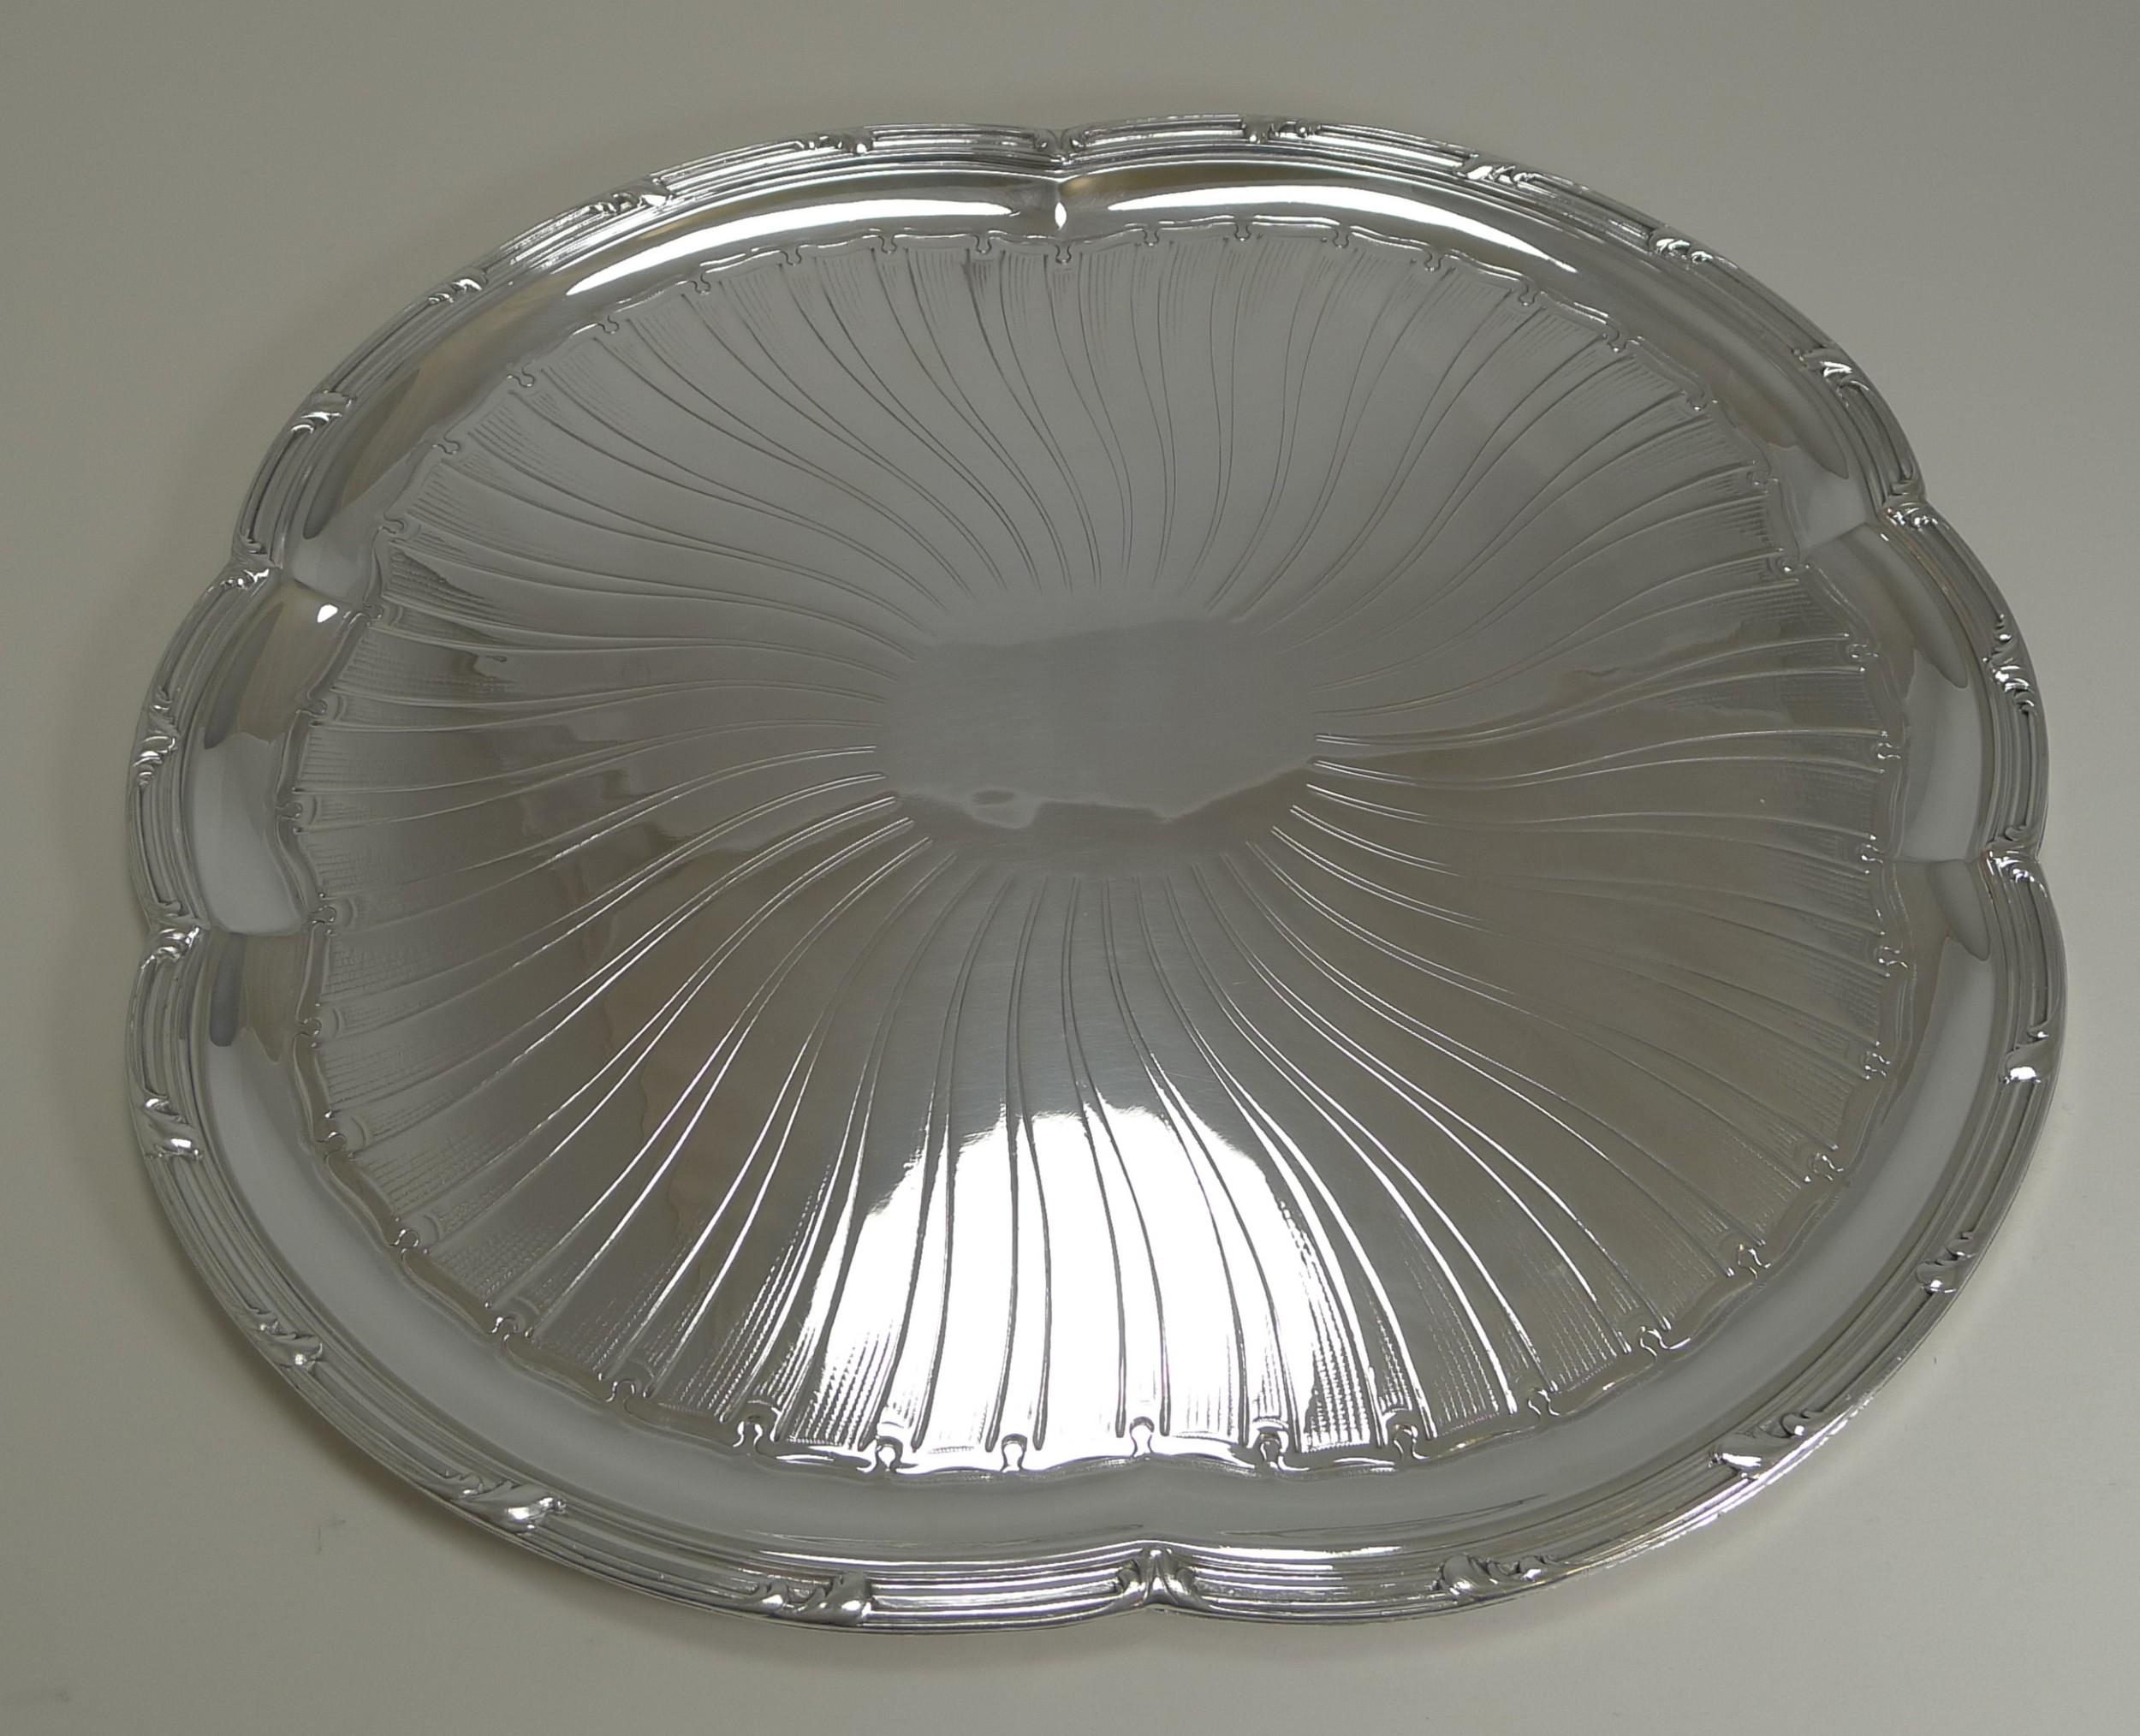 antique french christofle silver plated tray c1896 art nouveau